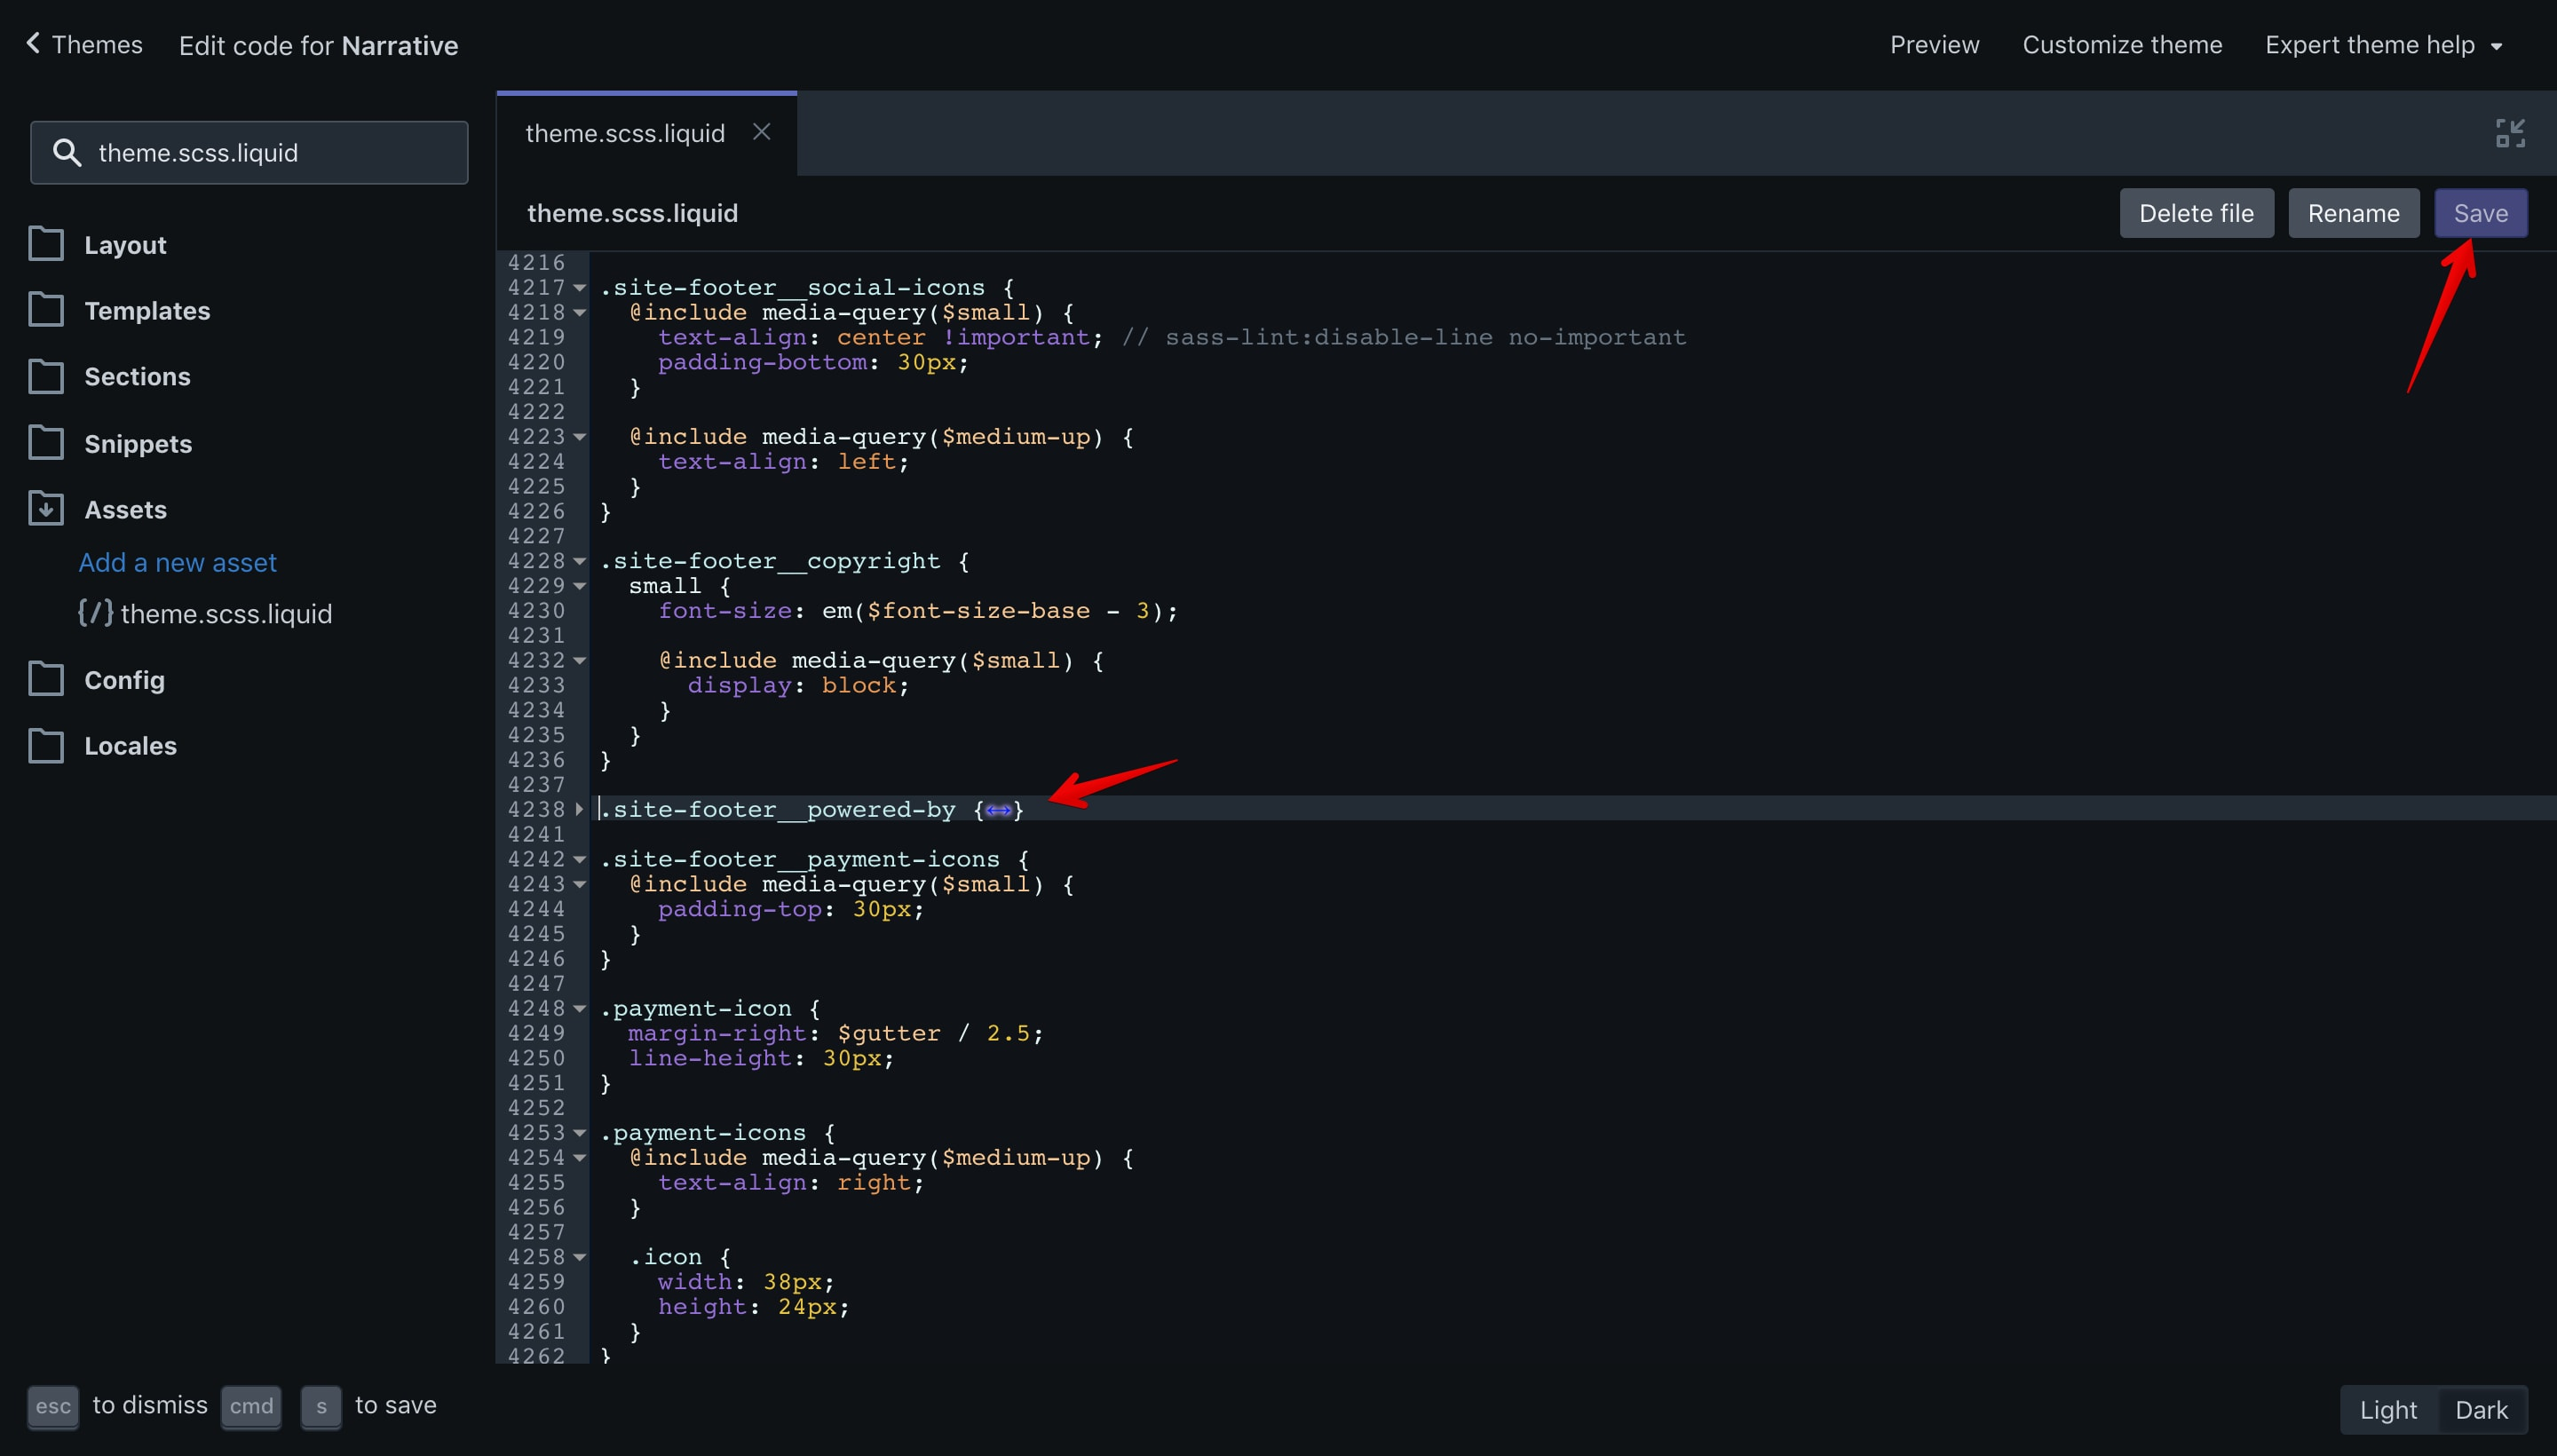 Narrative CSS code removal and save button.